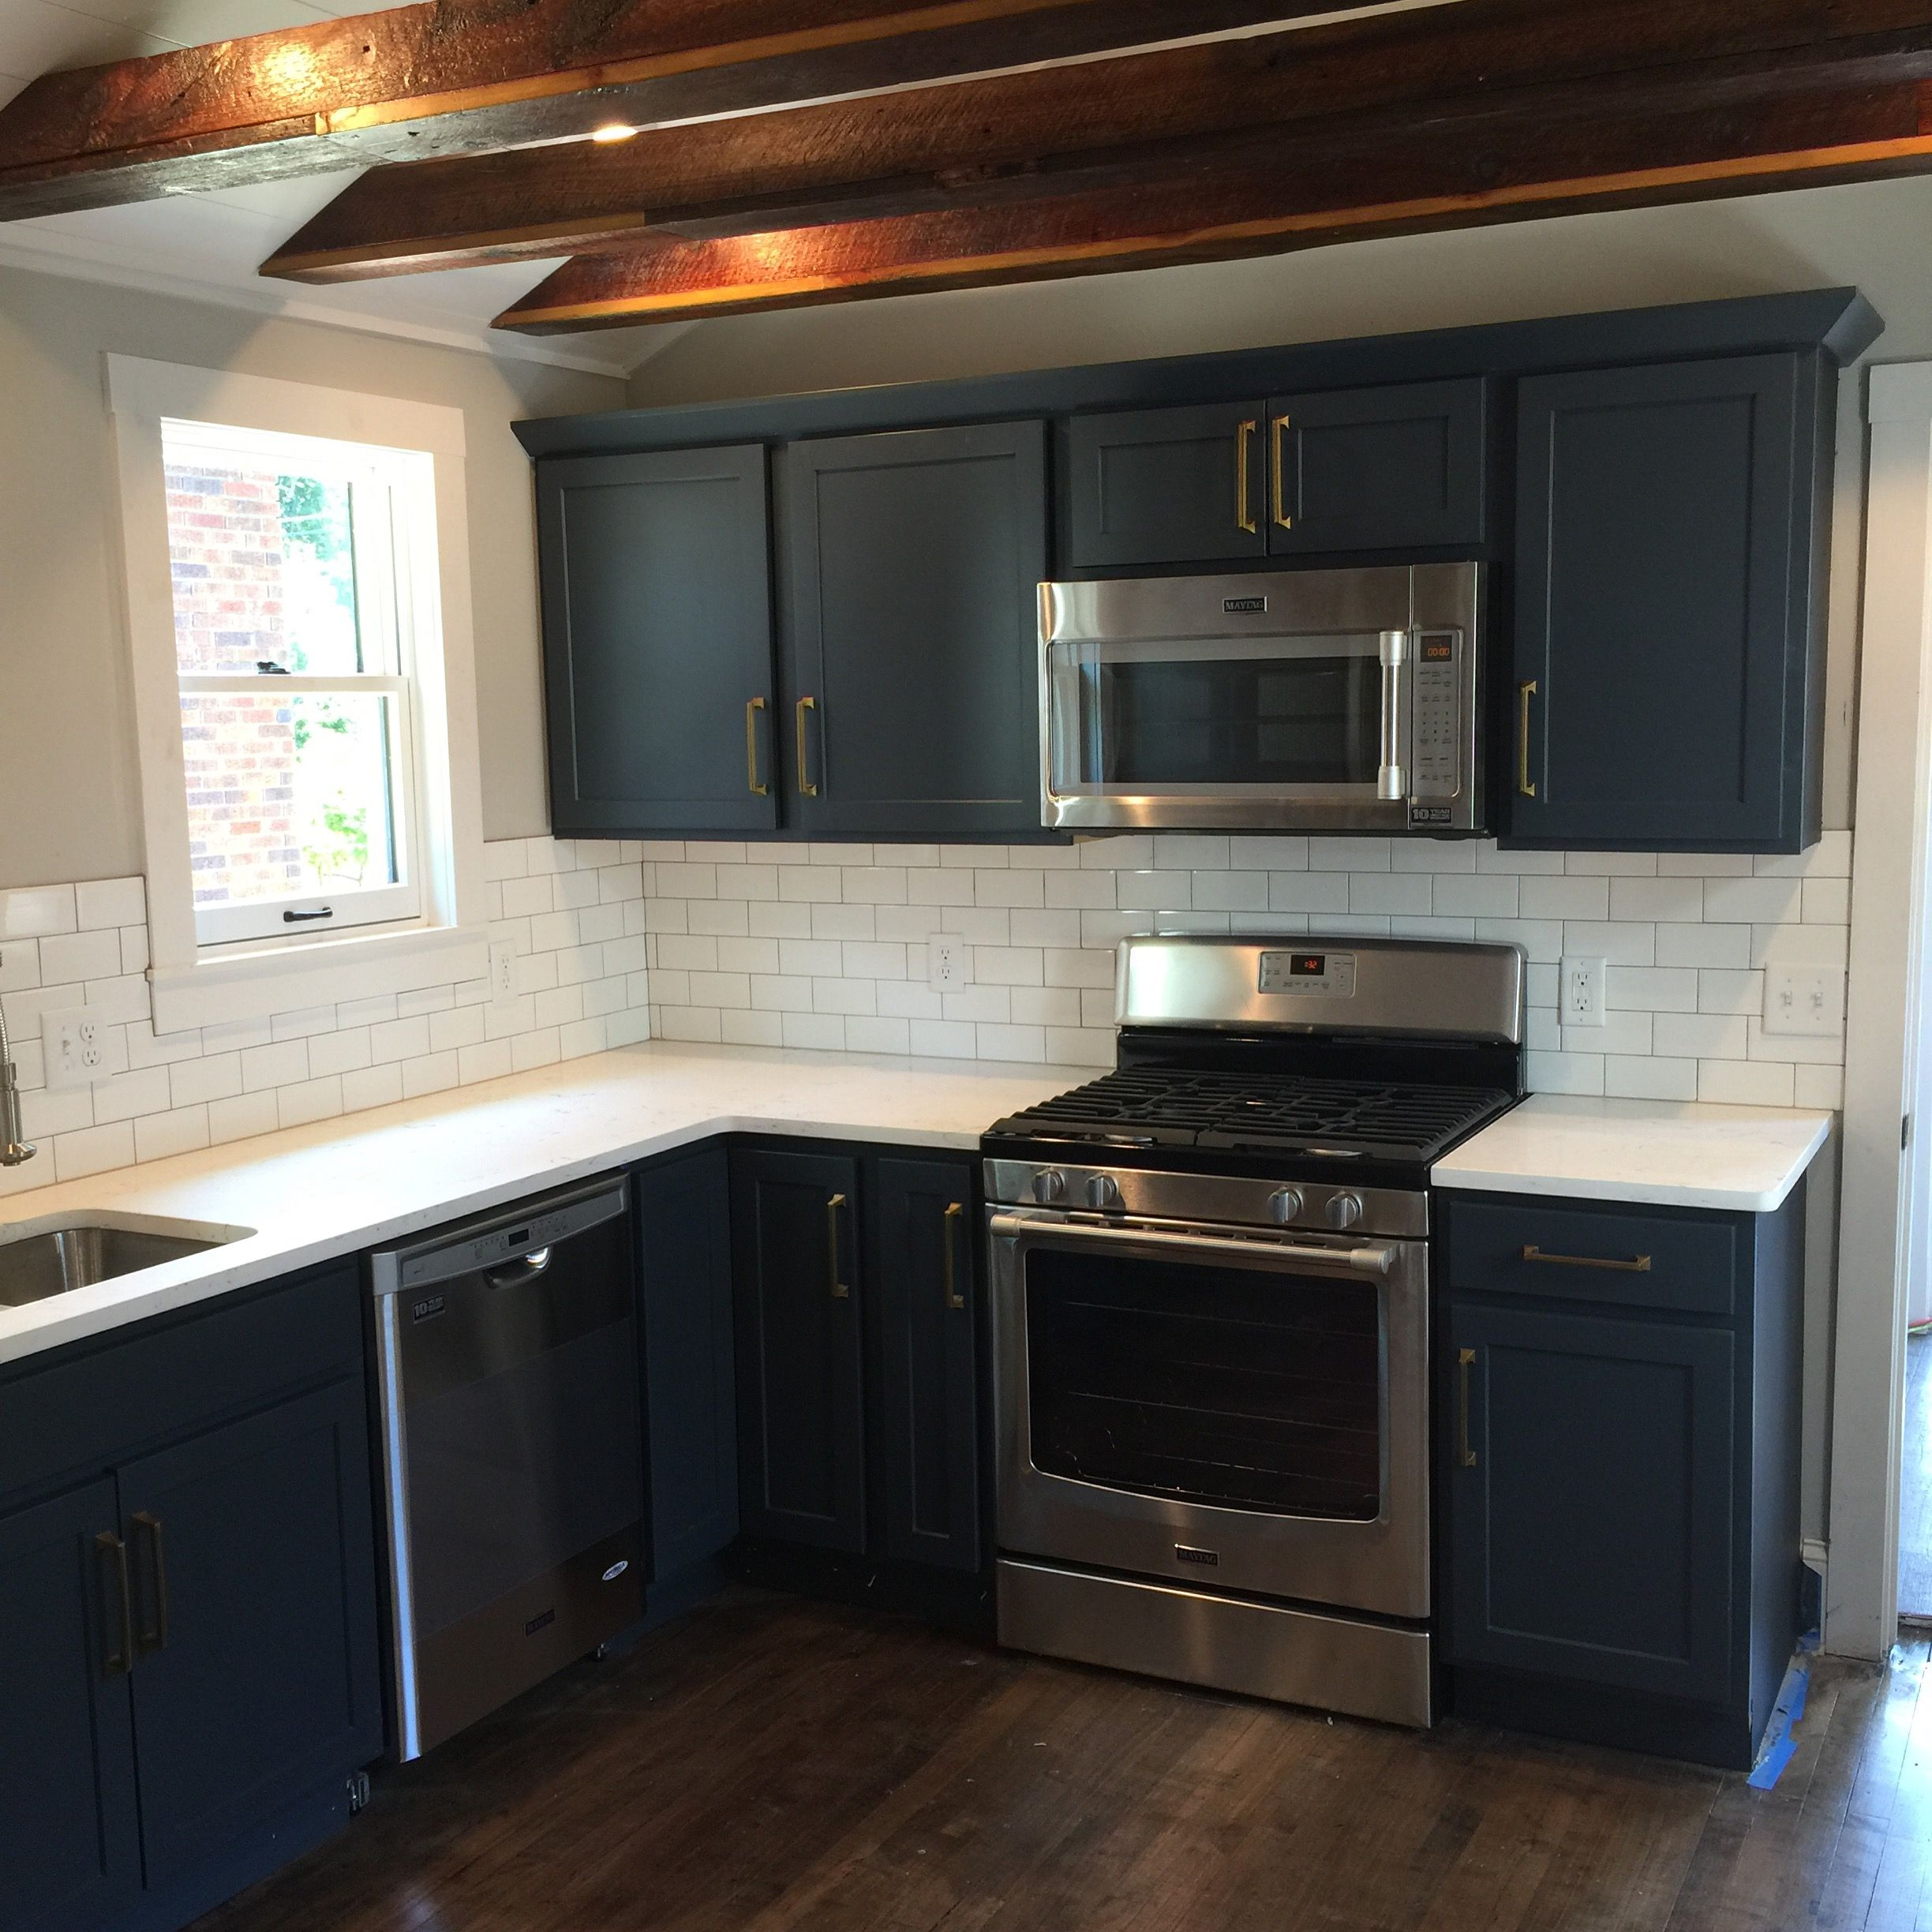 Homecrest Cadet Blue Cabinets Ceiling Joists Wrapped With Reclaimed Lumber Blue Cabinets Homecrest Cabinets Kitchen Inspirations